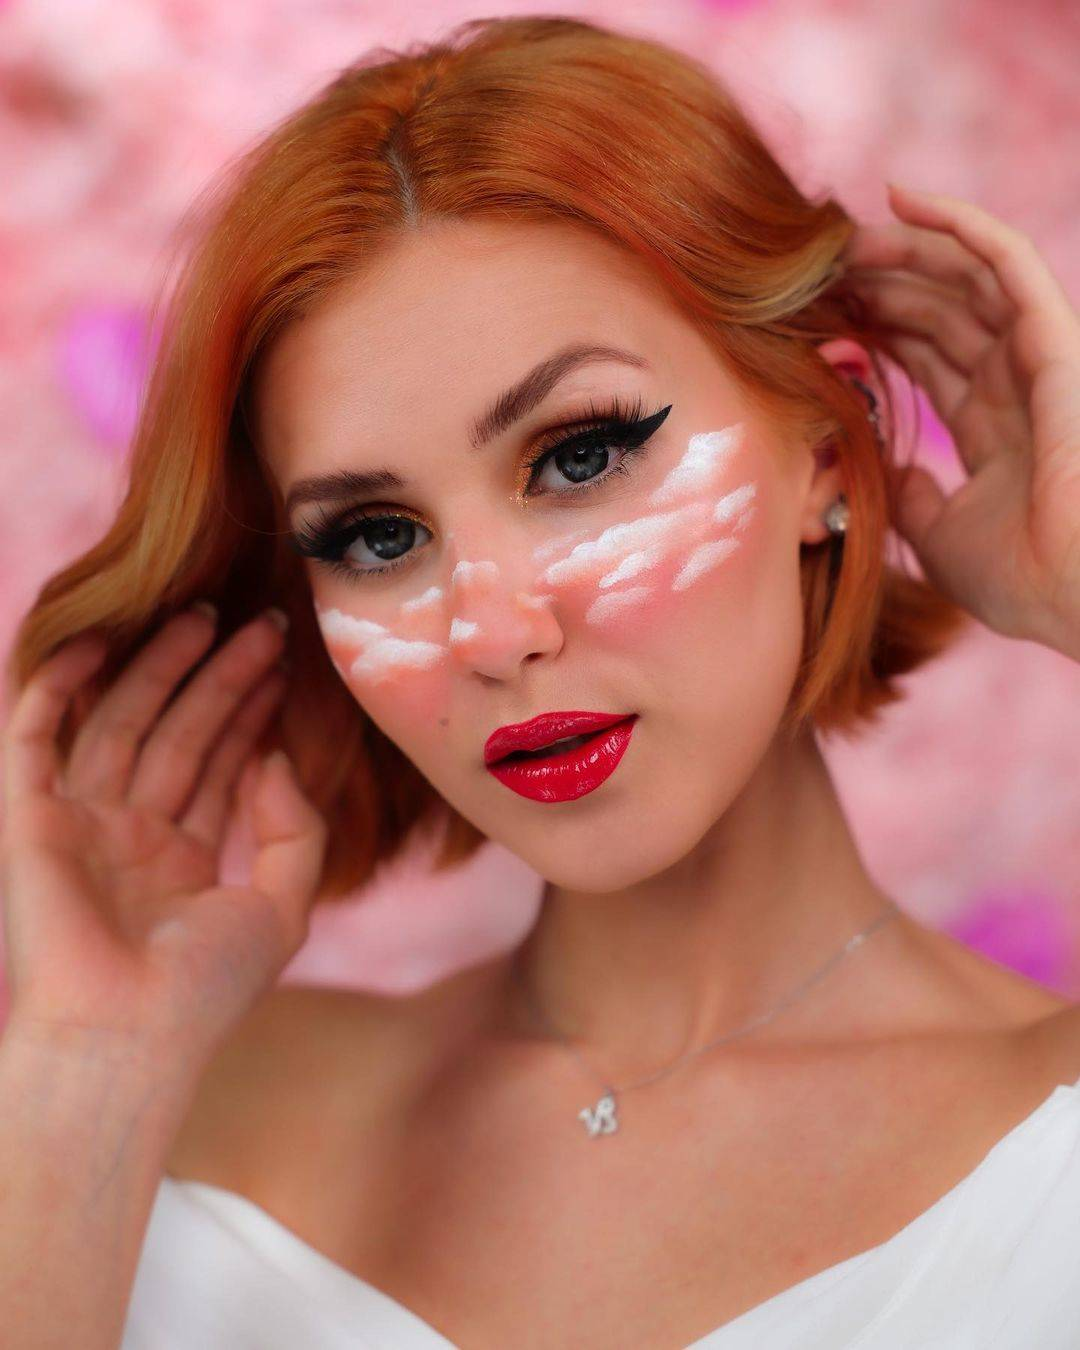 Popular YouTuber Stella Cini proves dyeing your own hair is not as complicated as it seems